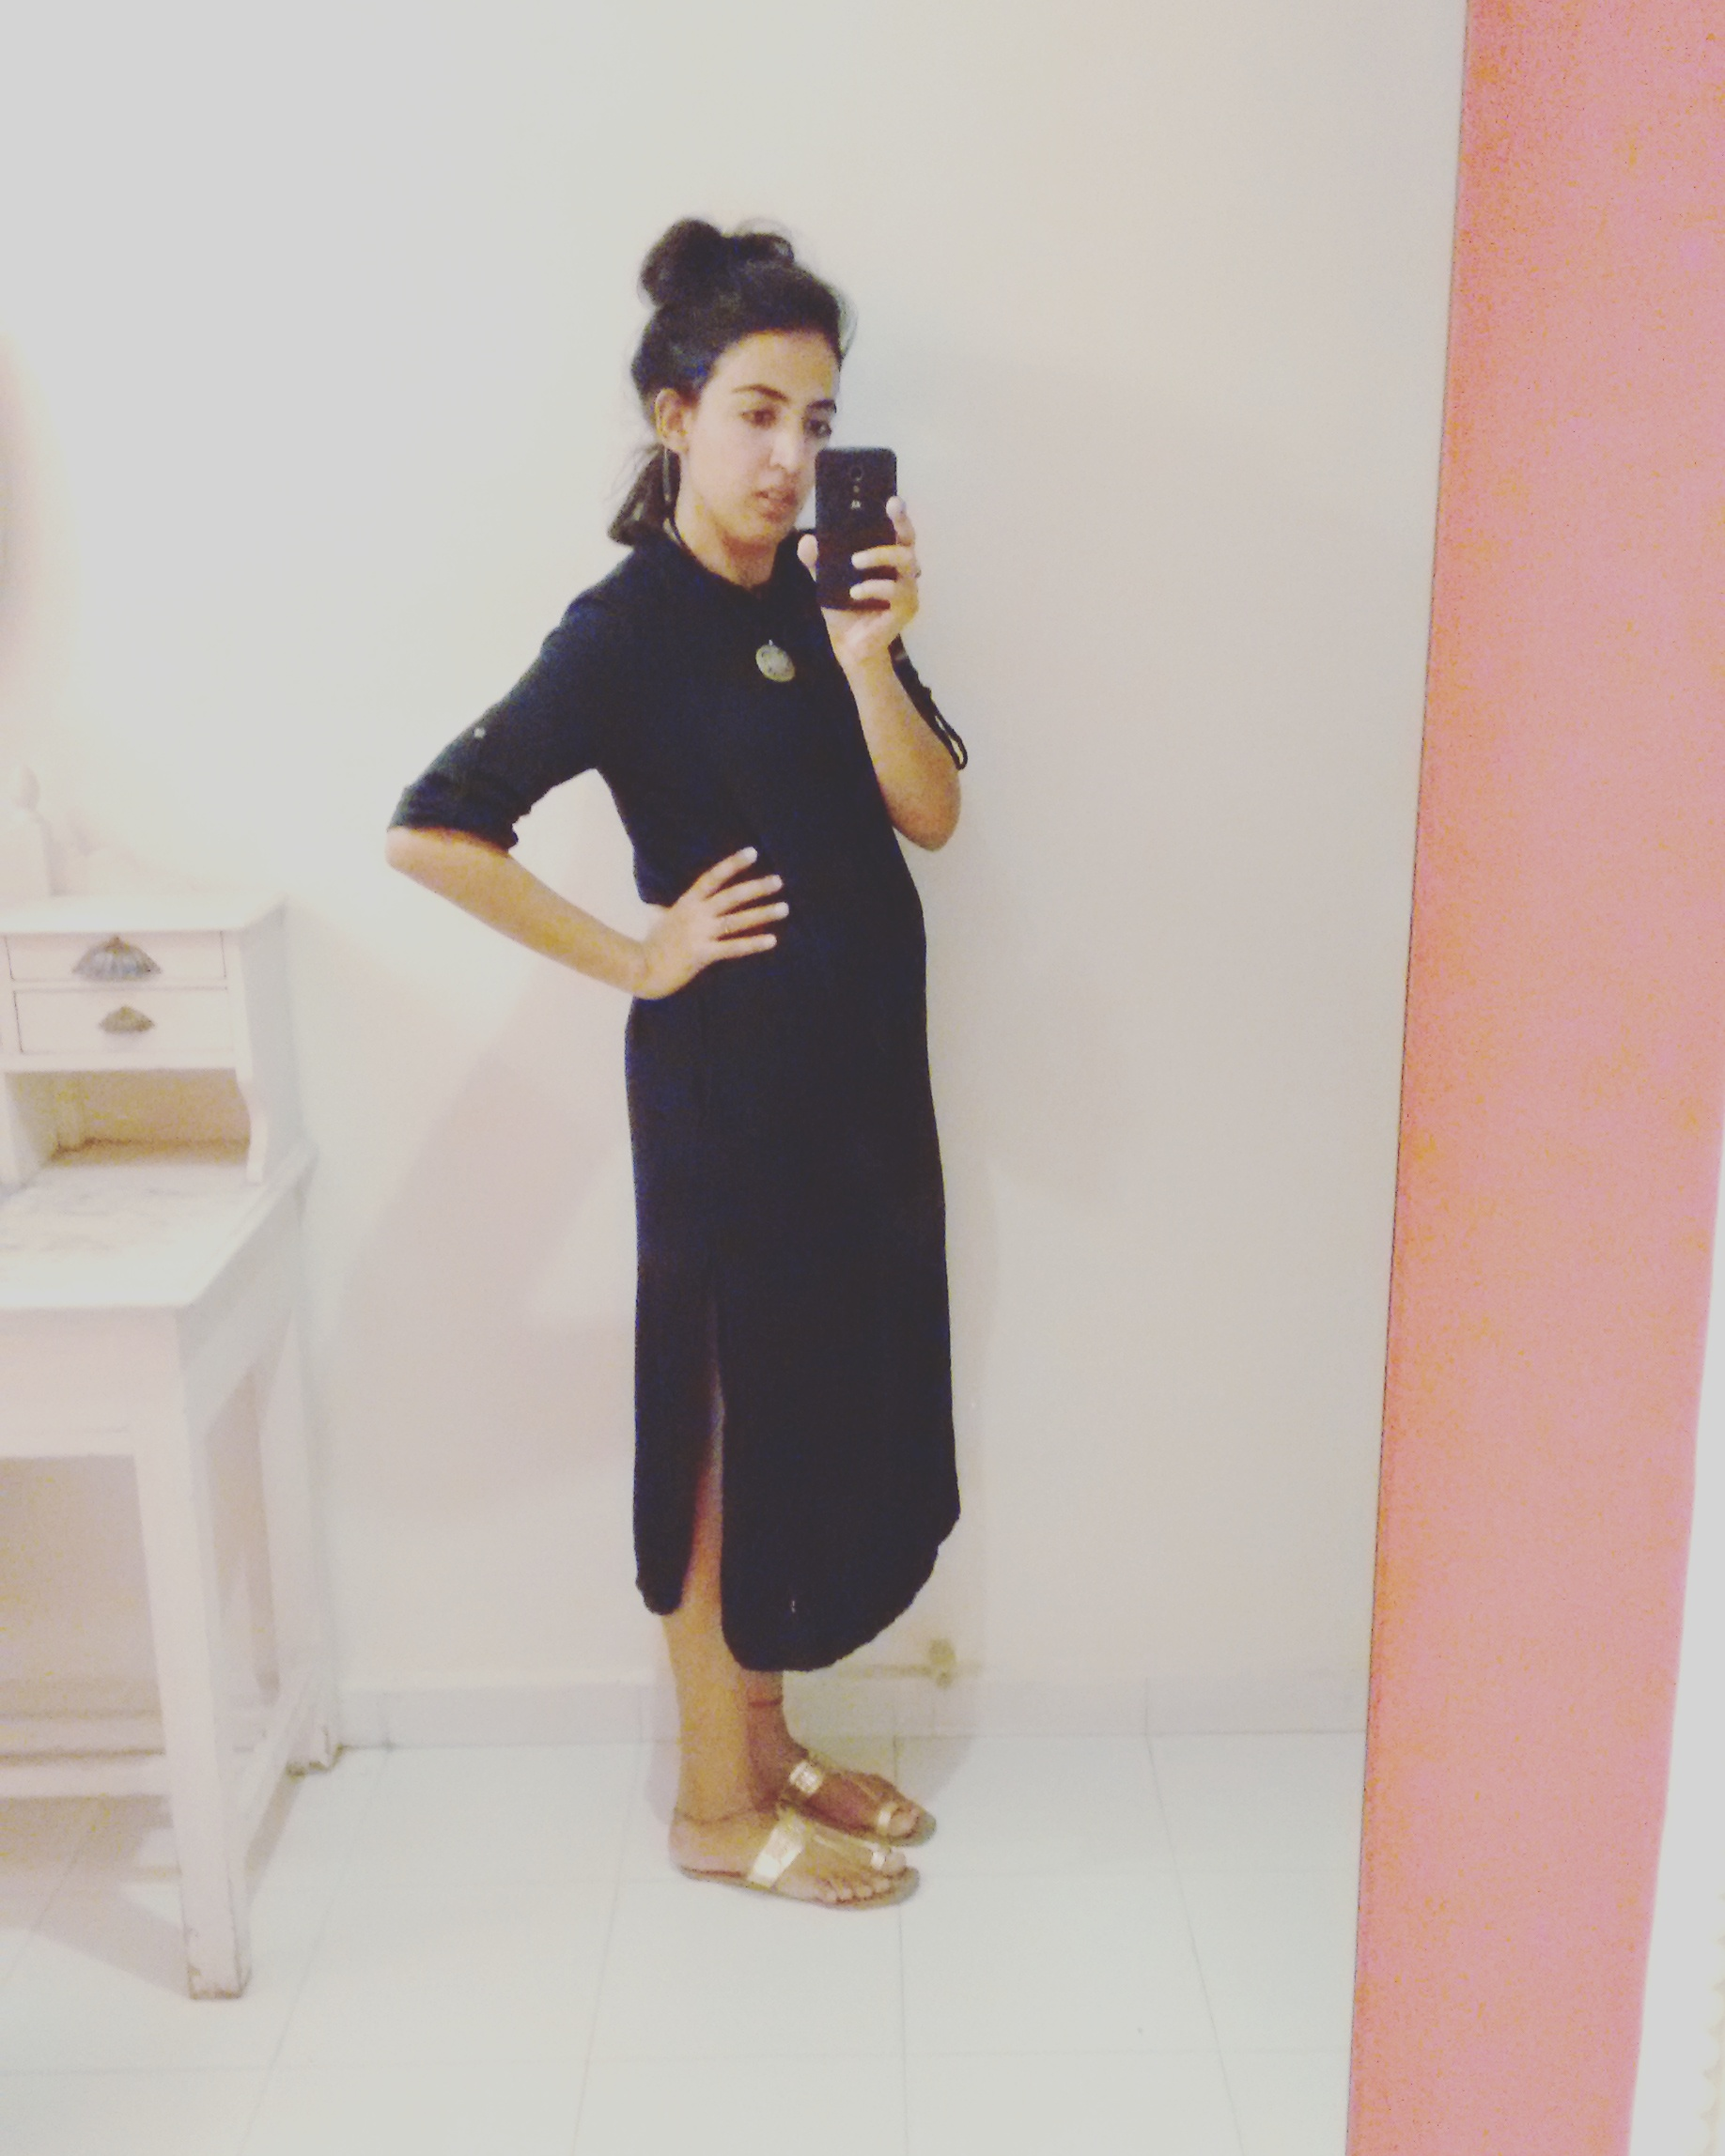 I wore my black midi dress with slits with Gold kolhapuri slip-ons and a statement pendant | Chai High is an Indian Fashion blog started by Shivani Krishan